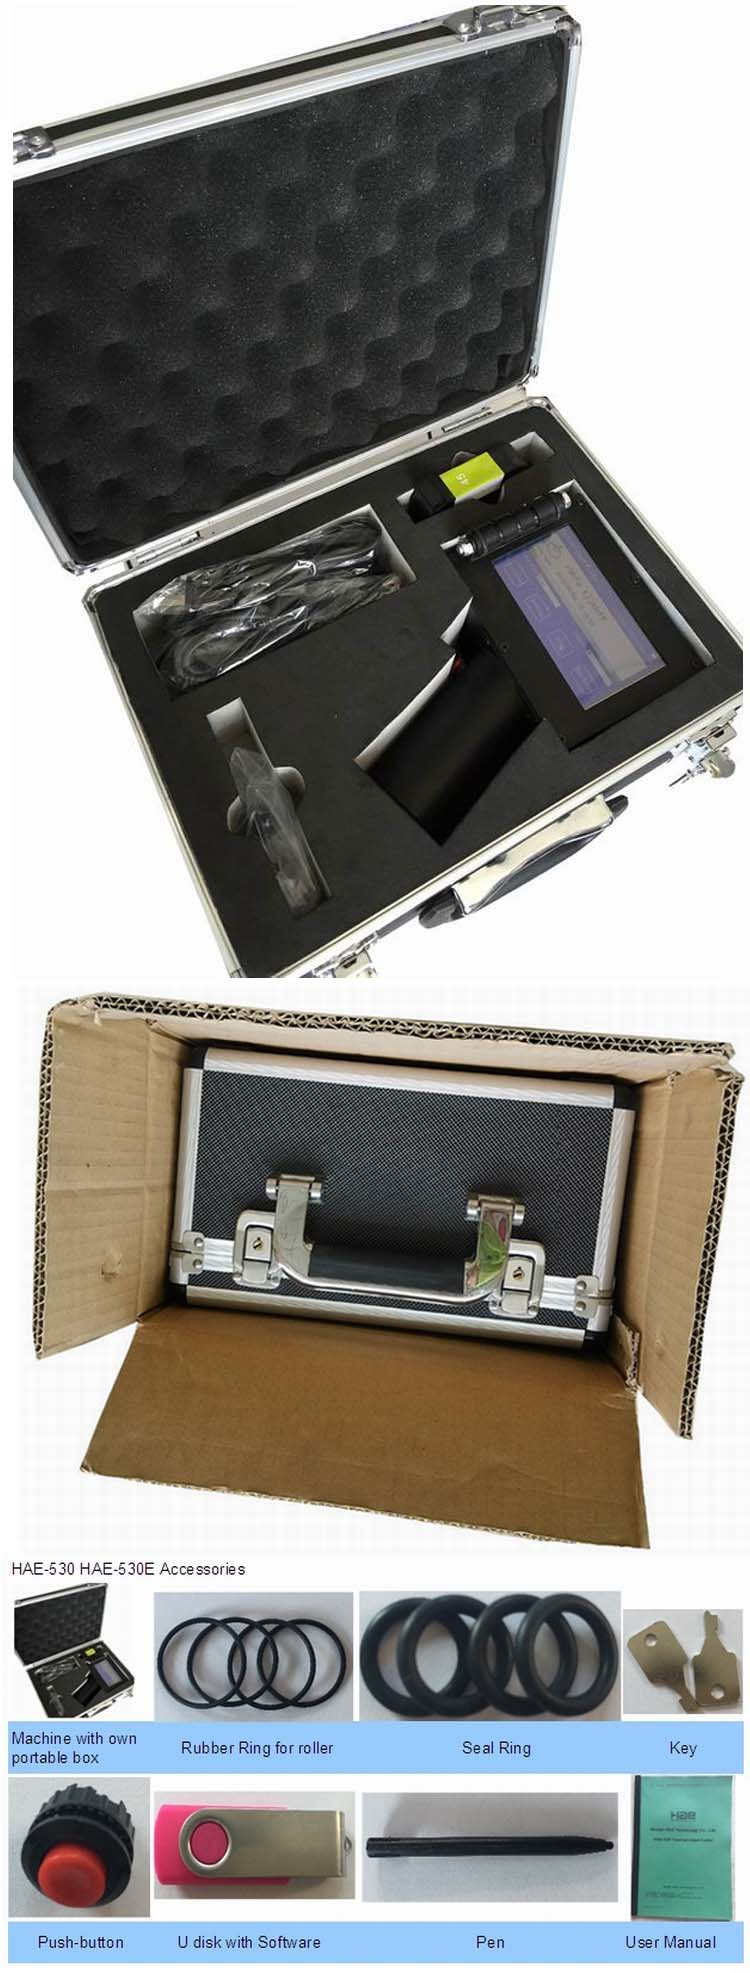 handheld Inkjet Printer Packing